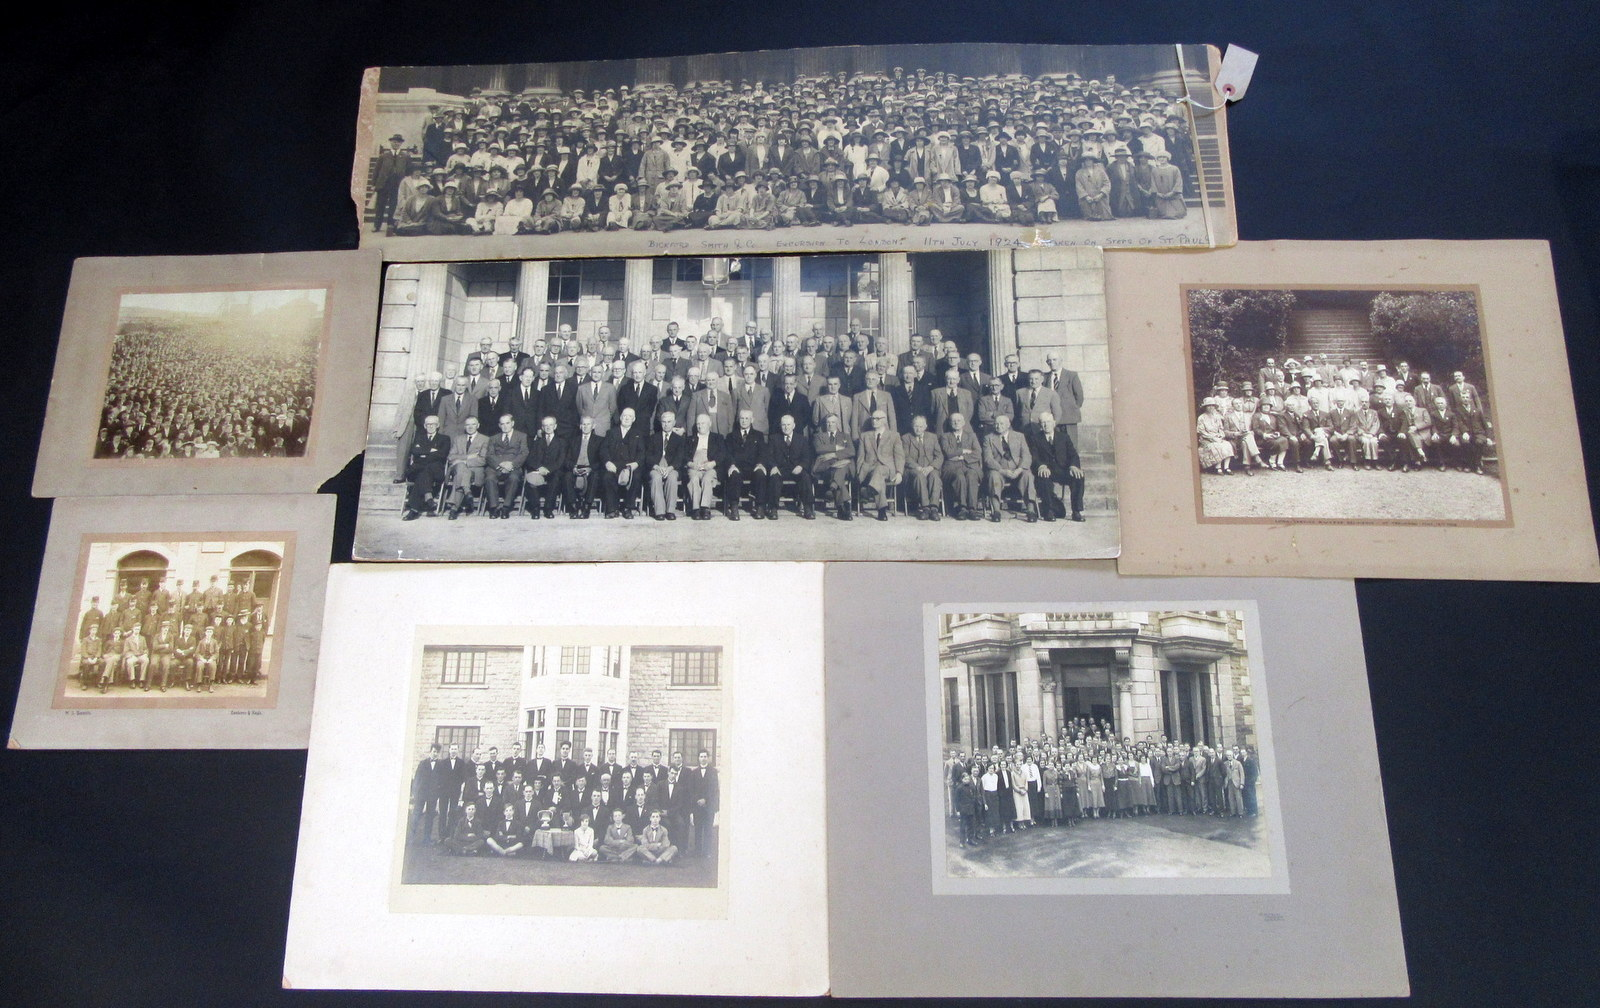 Lot 50 - A Burrow photograph showing a huge crowd by mine buildings,